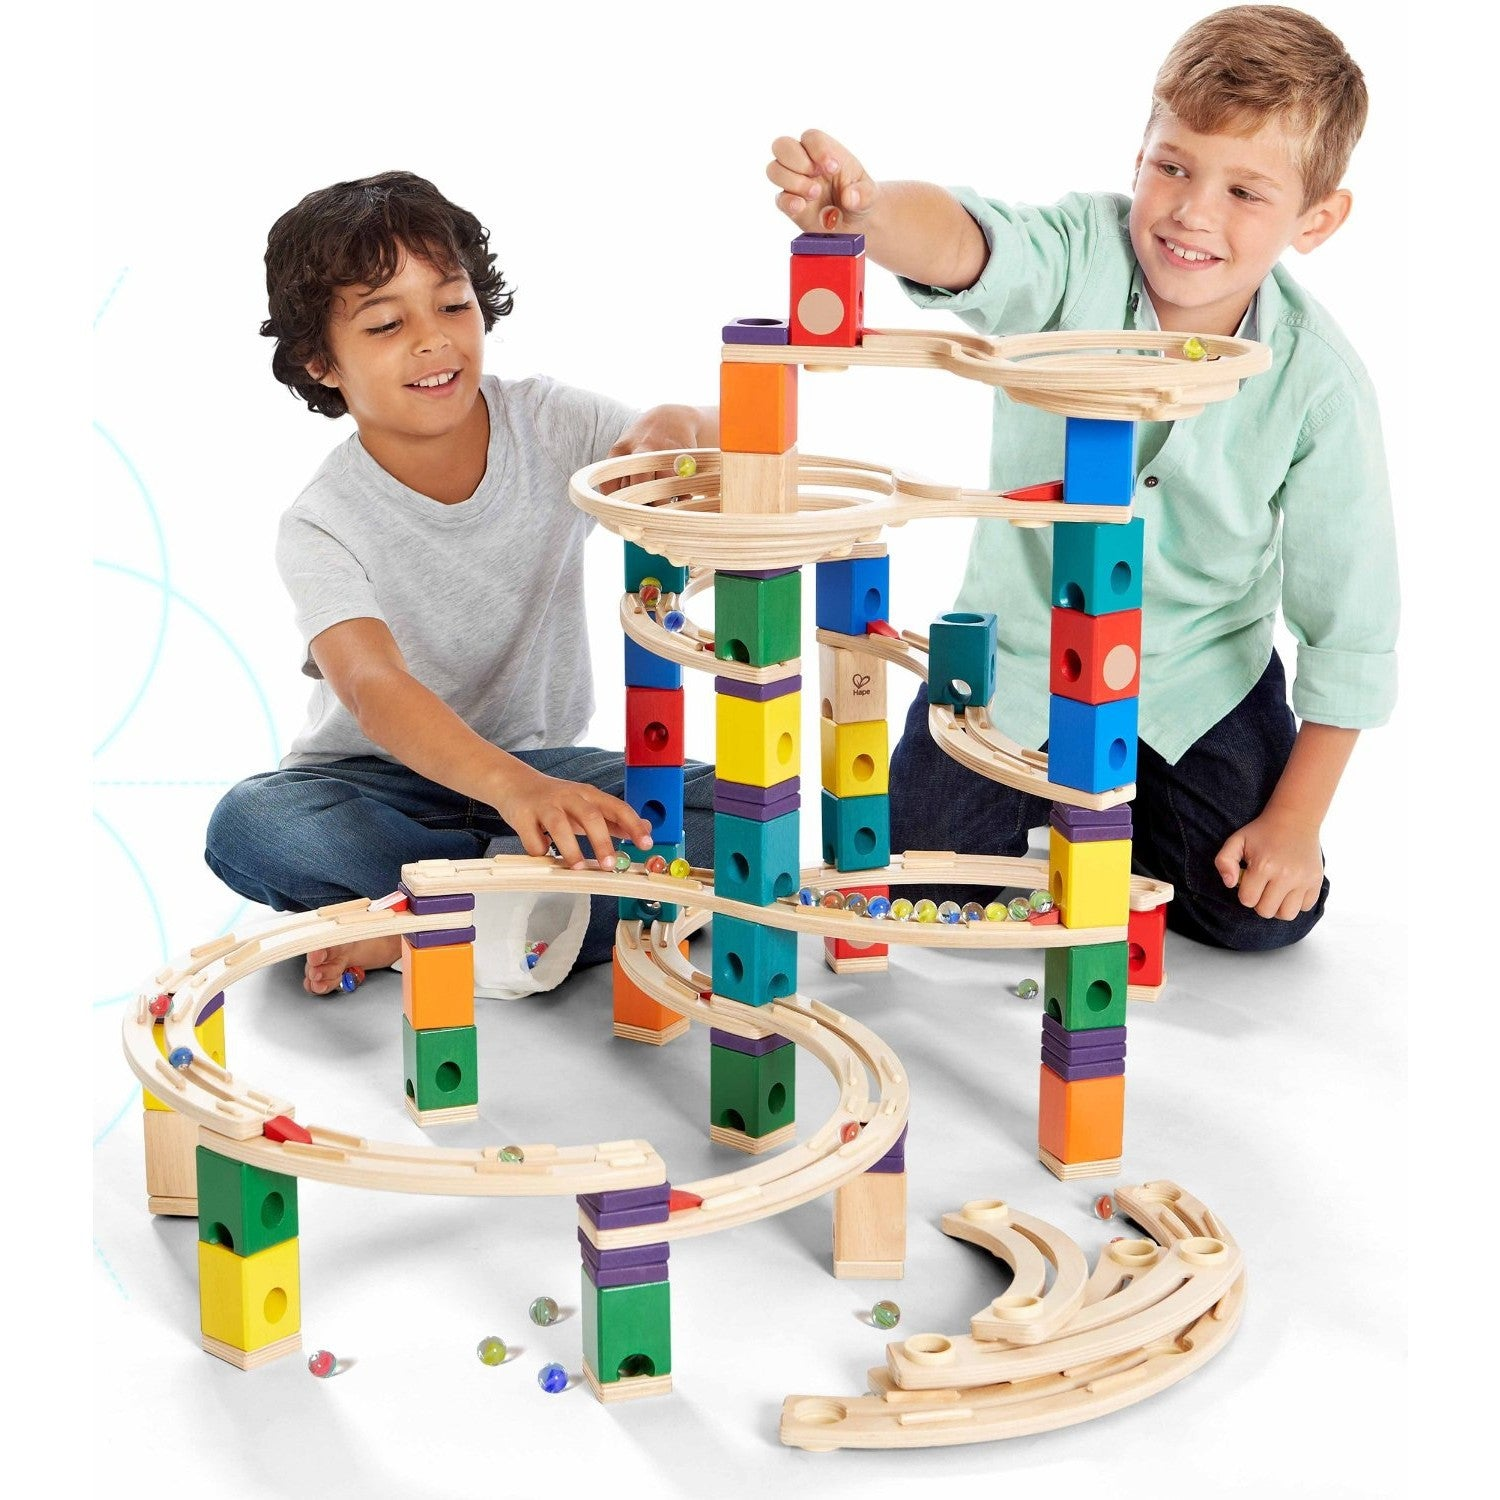 Hape Quadrilla The Cyclone Marble Run Hape Activity Toys at Little Earth Nest Eco Shop